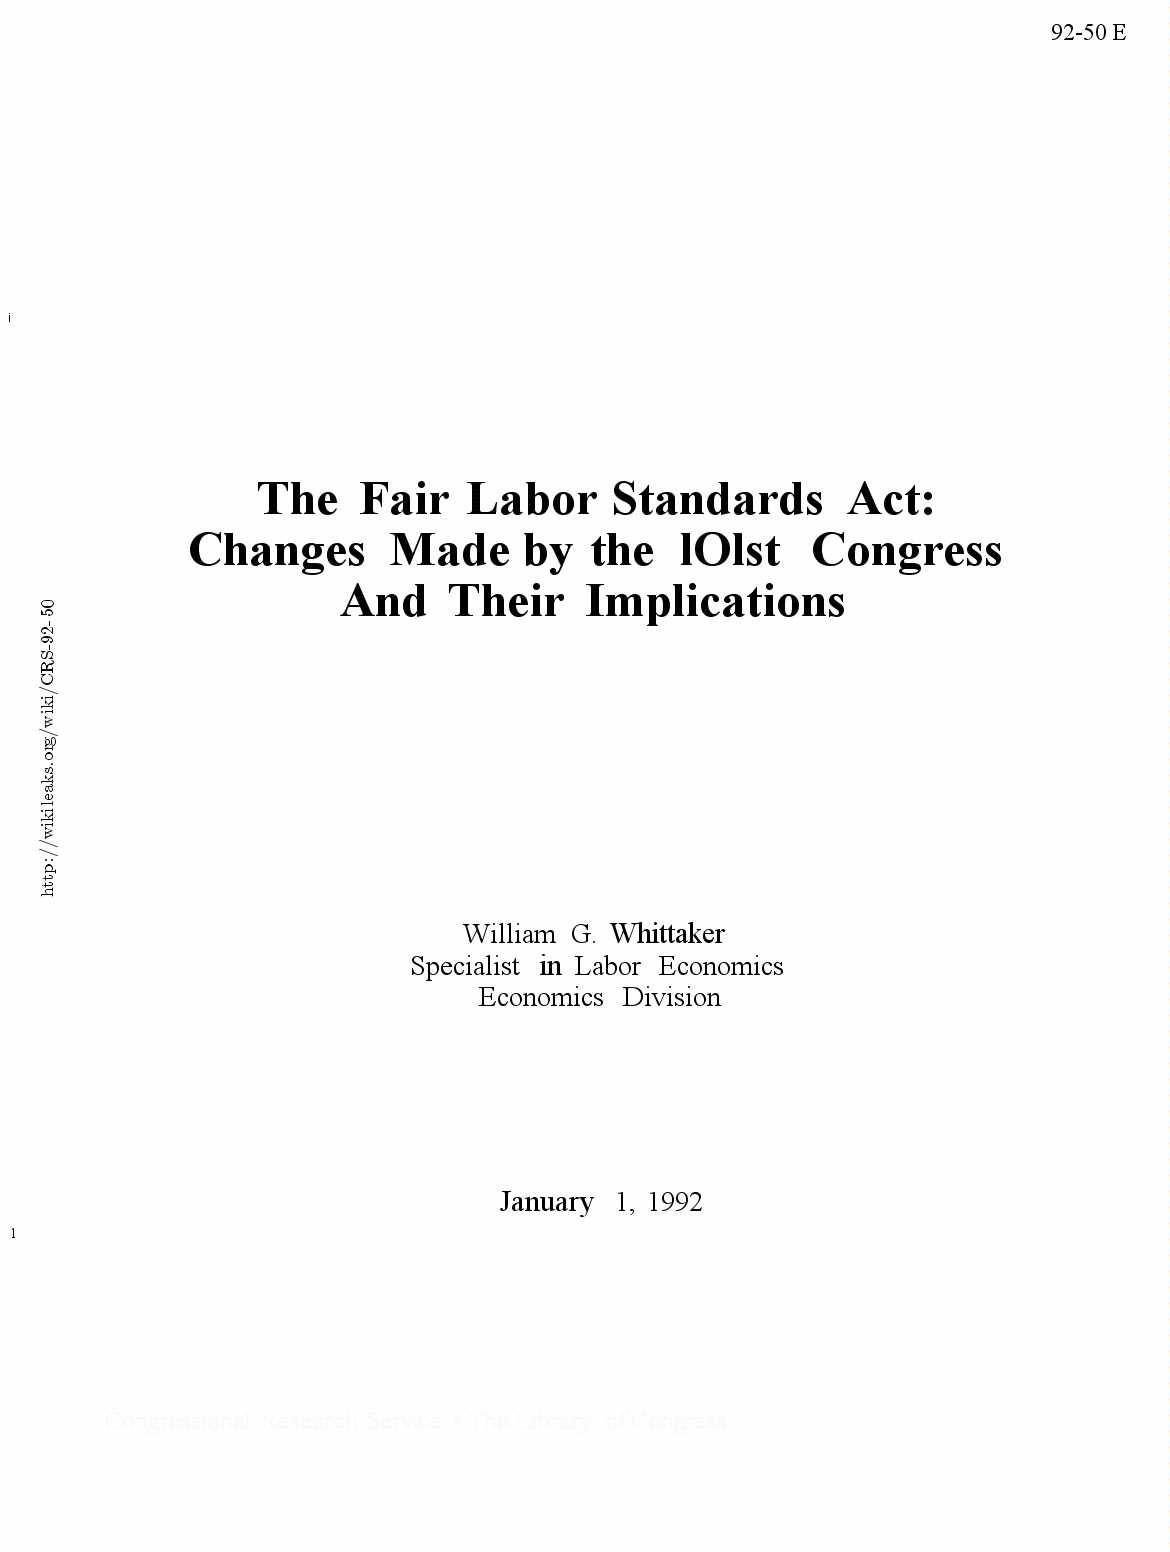 Fair labor standards act research paper